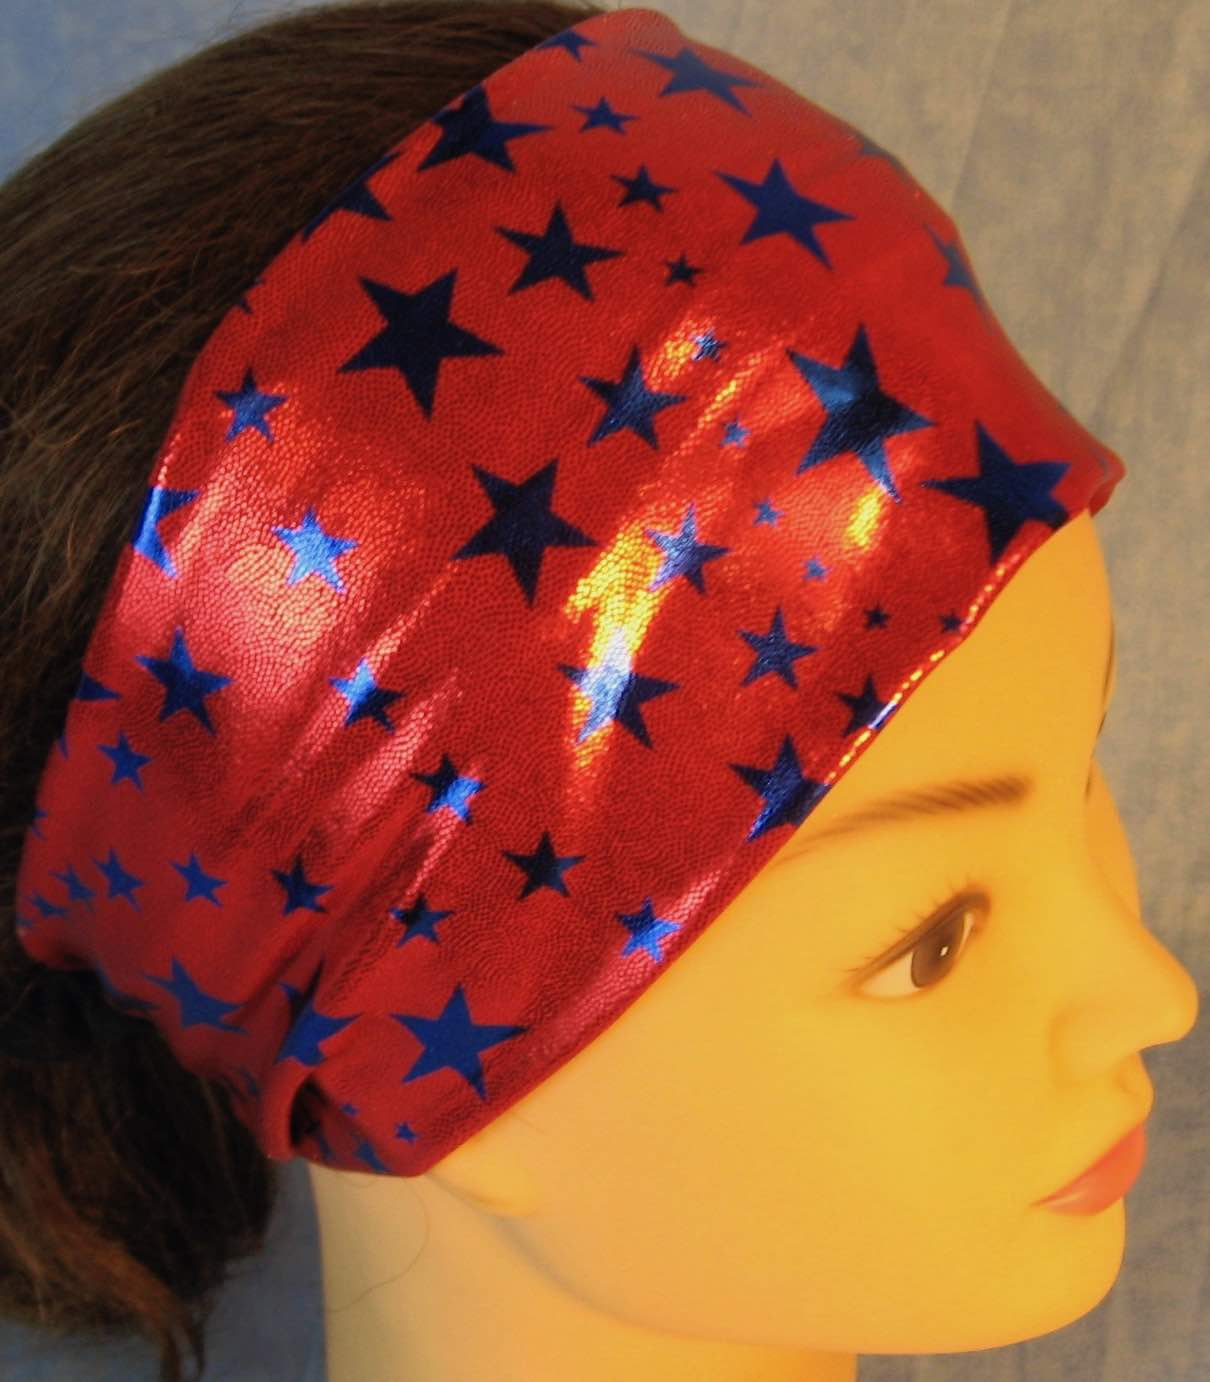 Headband-Blue Stars on Red with Silver Specks-right top